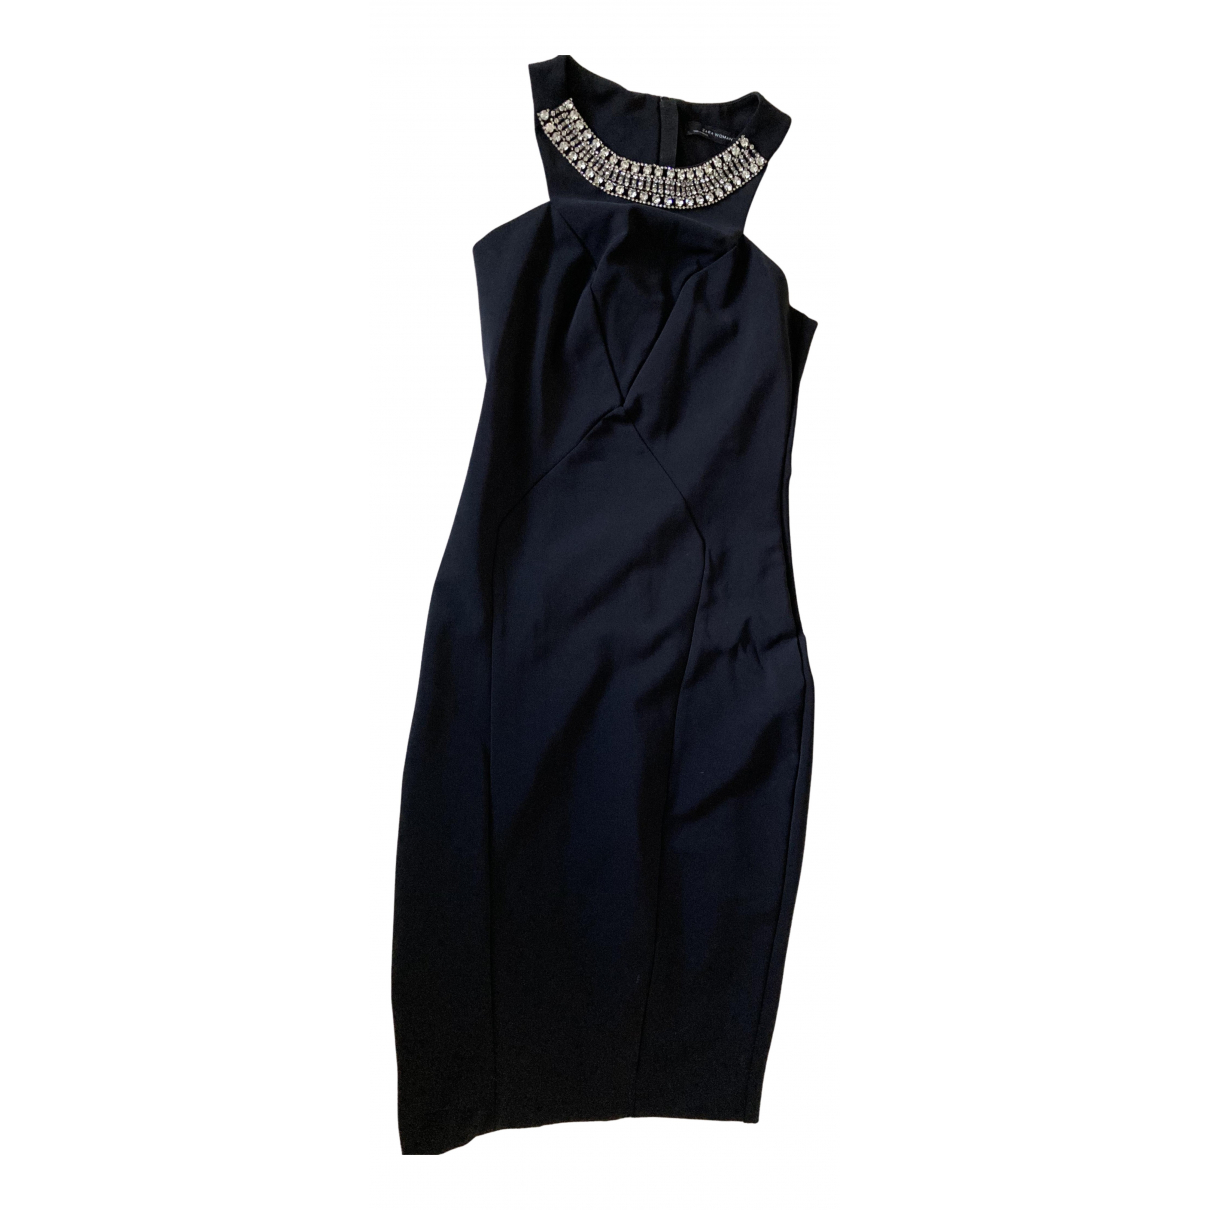 Zara N Black dress for Women S International